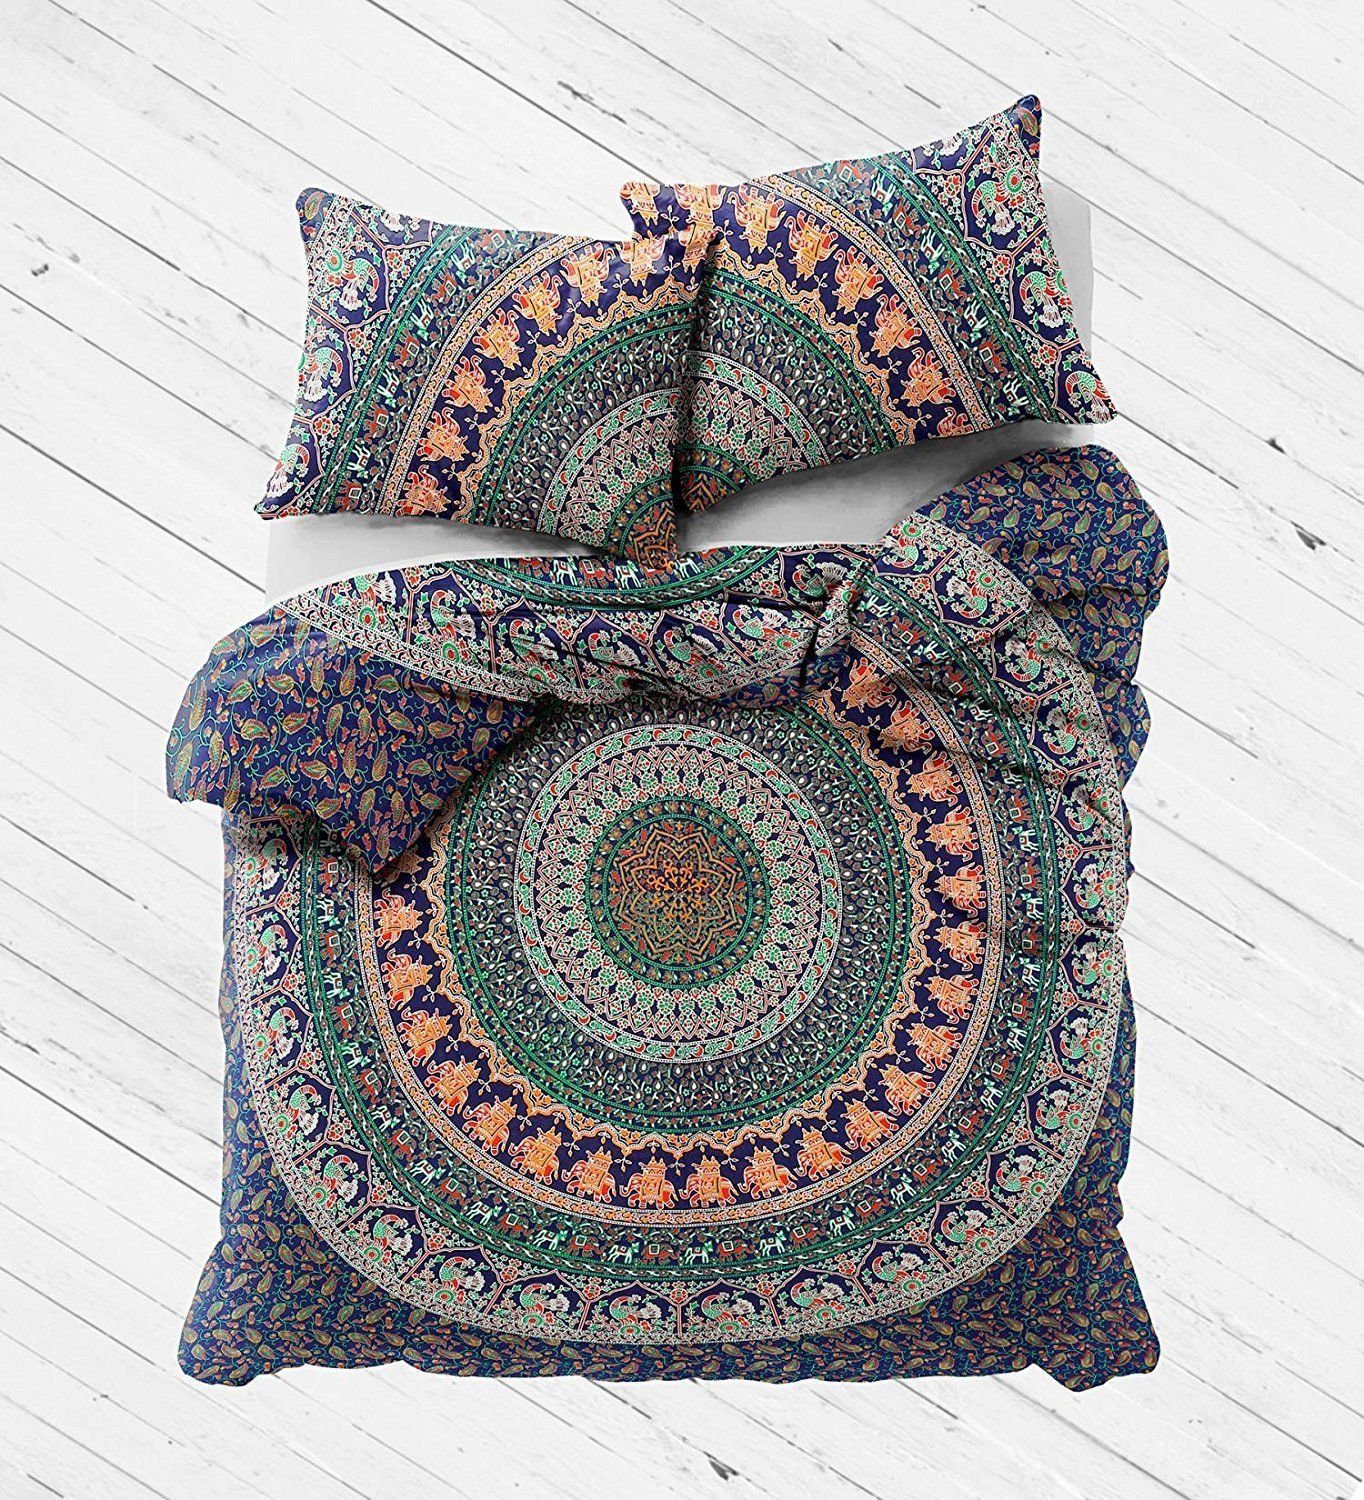 Duvet Fits a Full Size Comforter and looks great on a twin size or full size bed. MADE IN INDIA:-Beautifully Hand Crafted By Local Artists A wonderful example